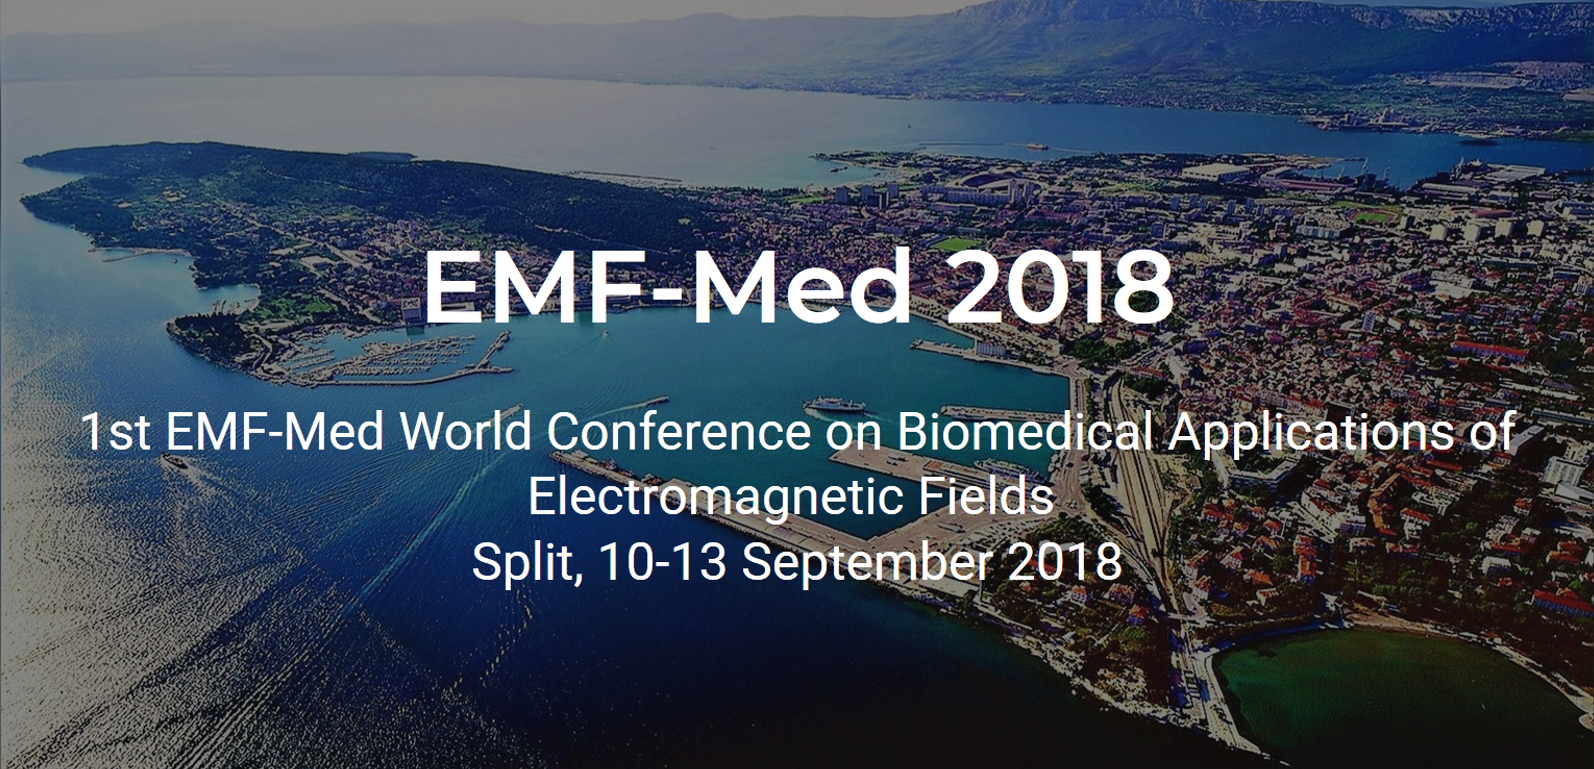 EMF-Med 2018 featured image